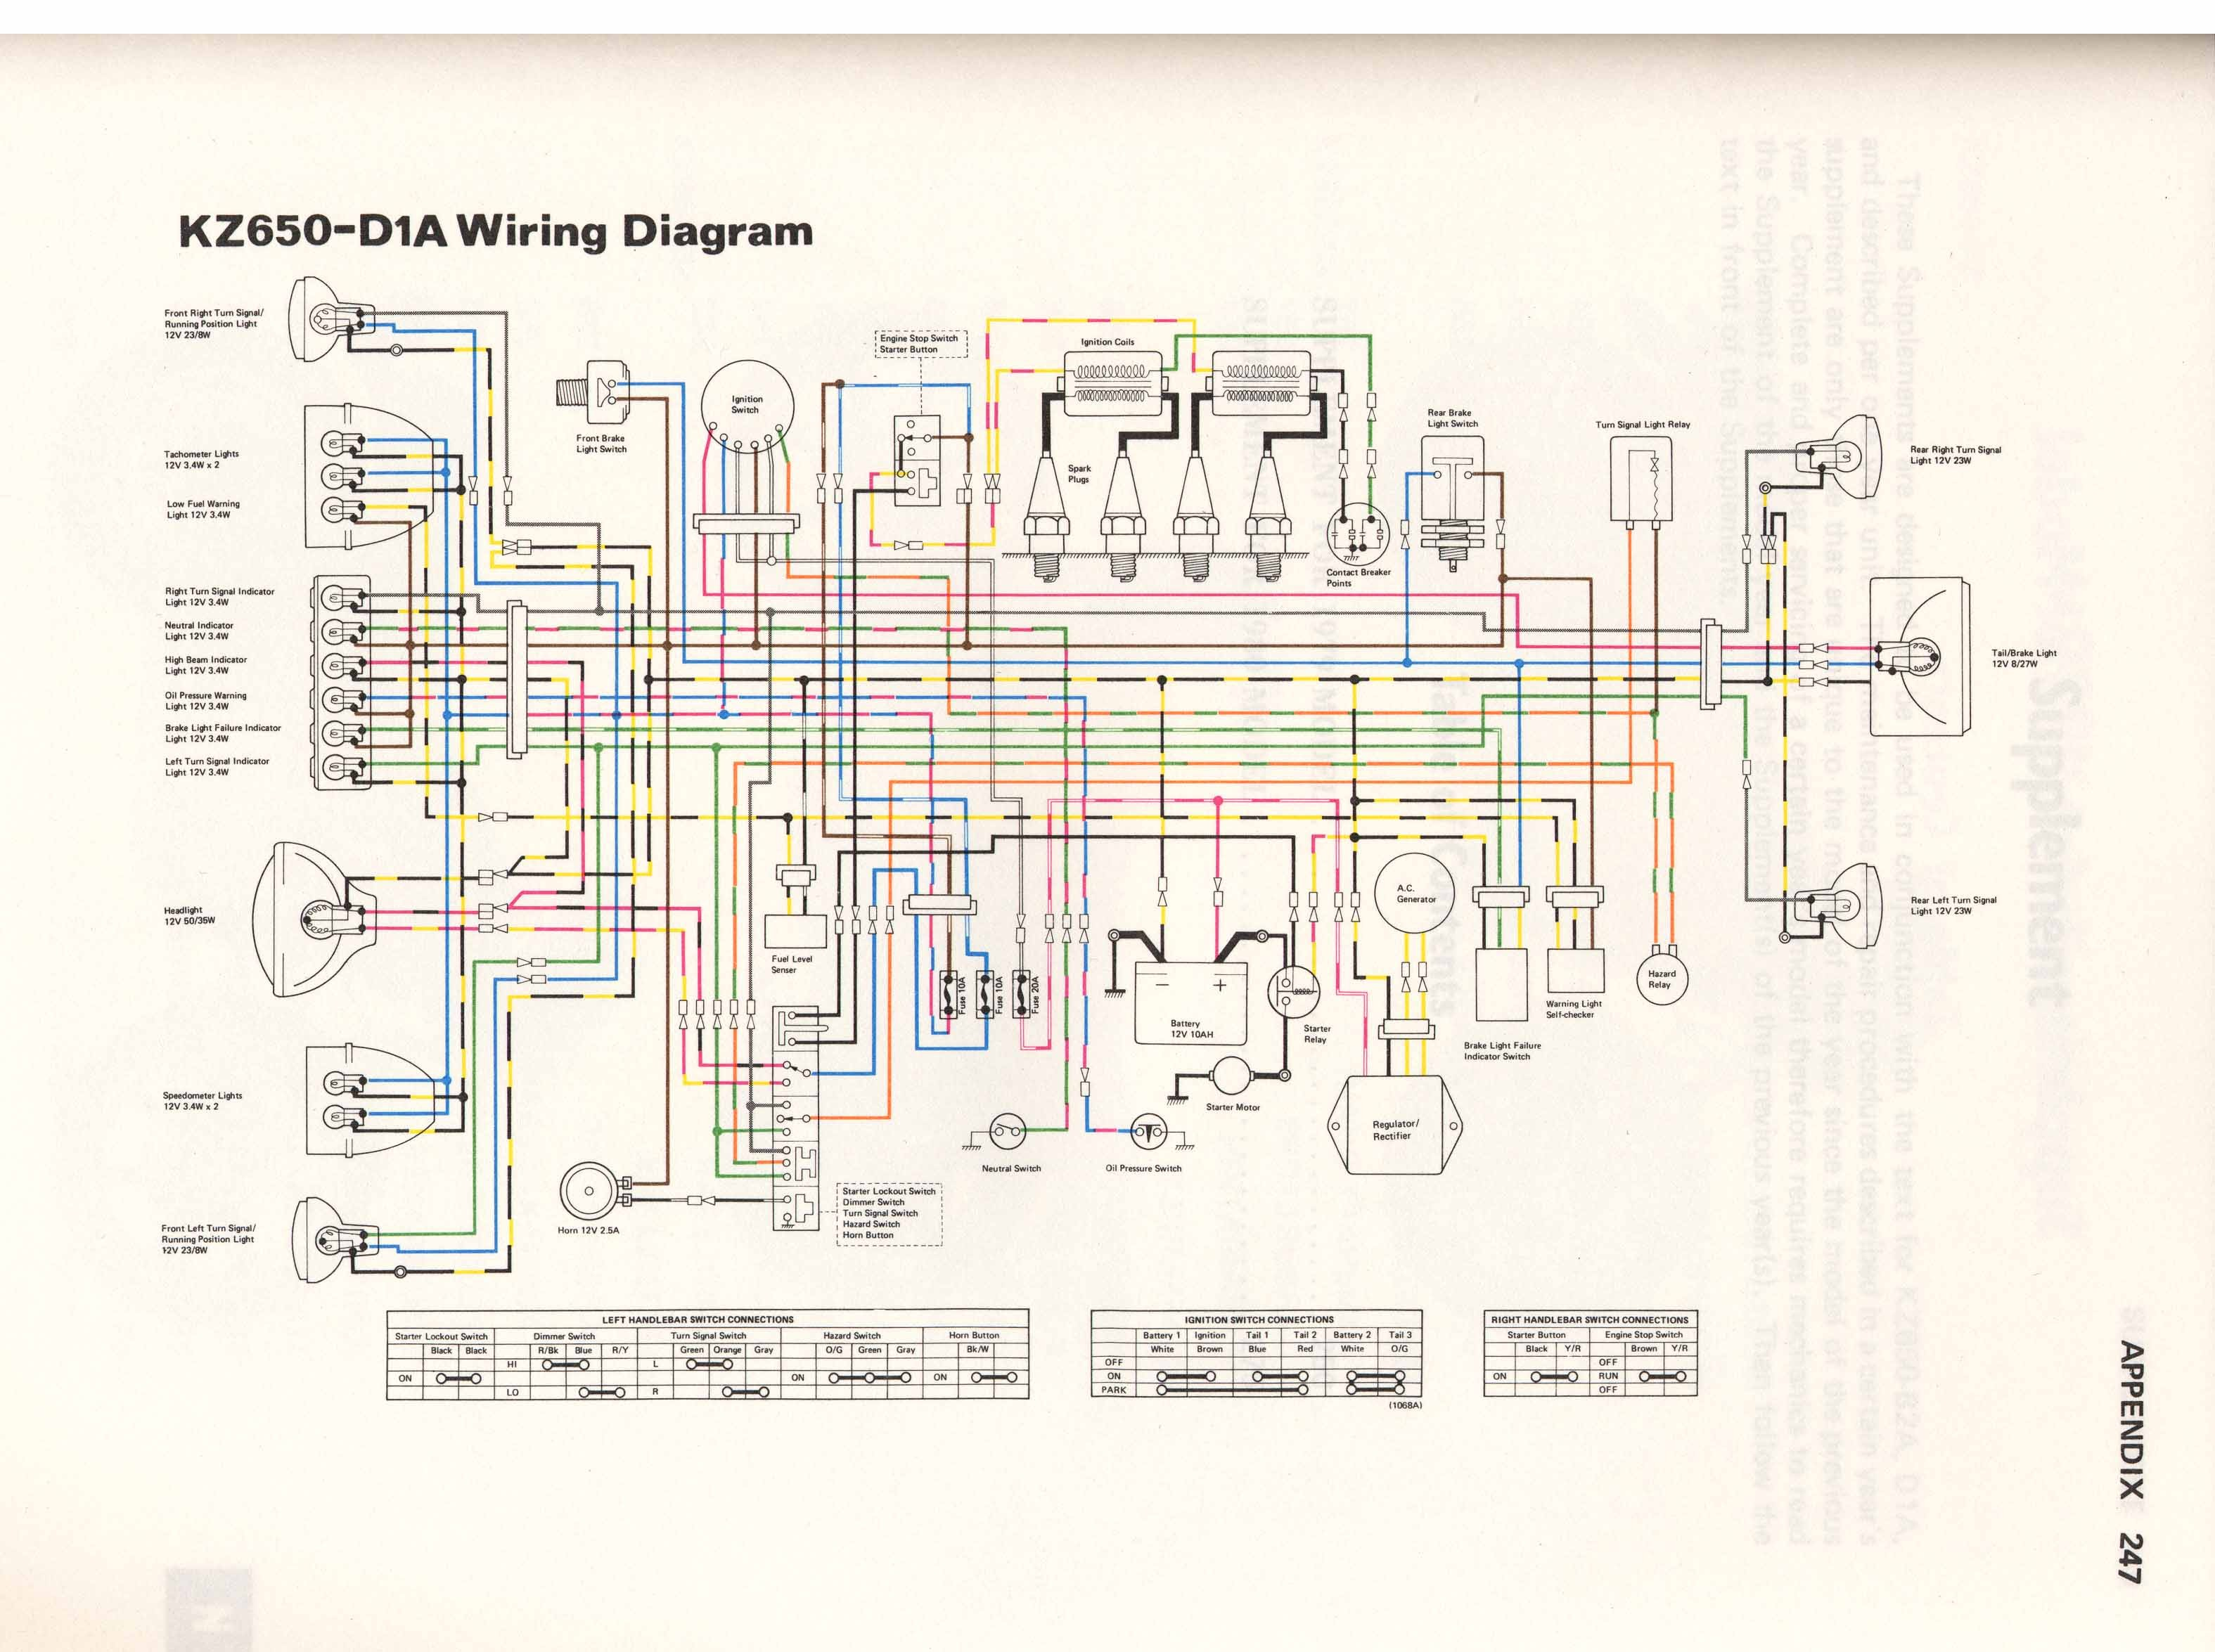 Twin Chopper Wiring Diagram Get Free Image About Wiring Diagram